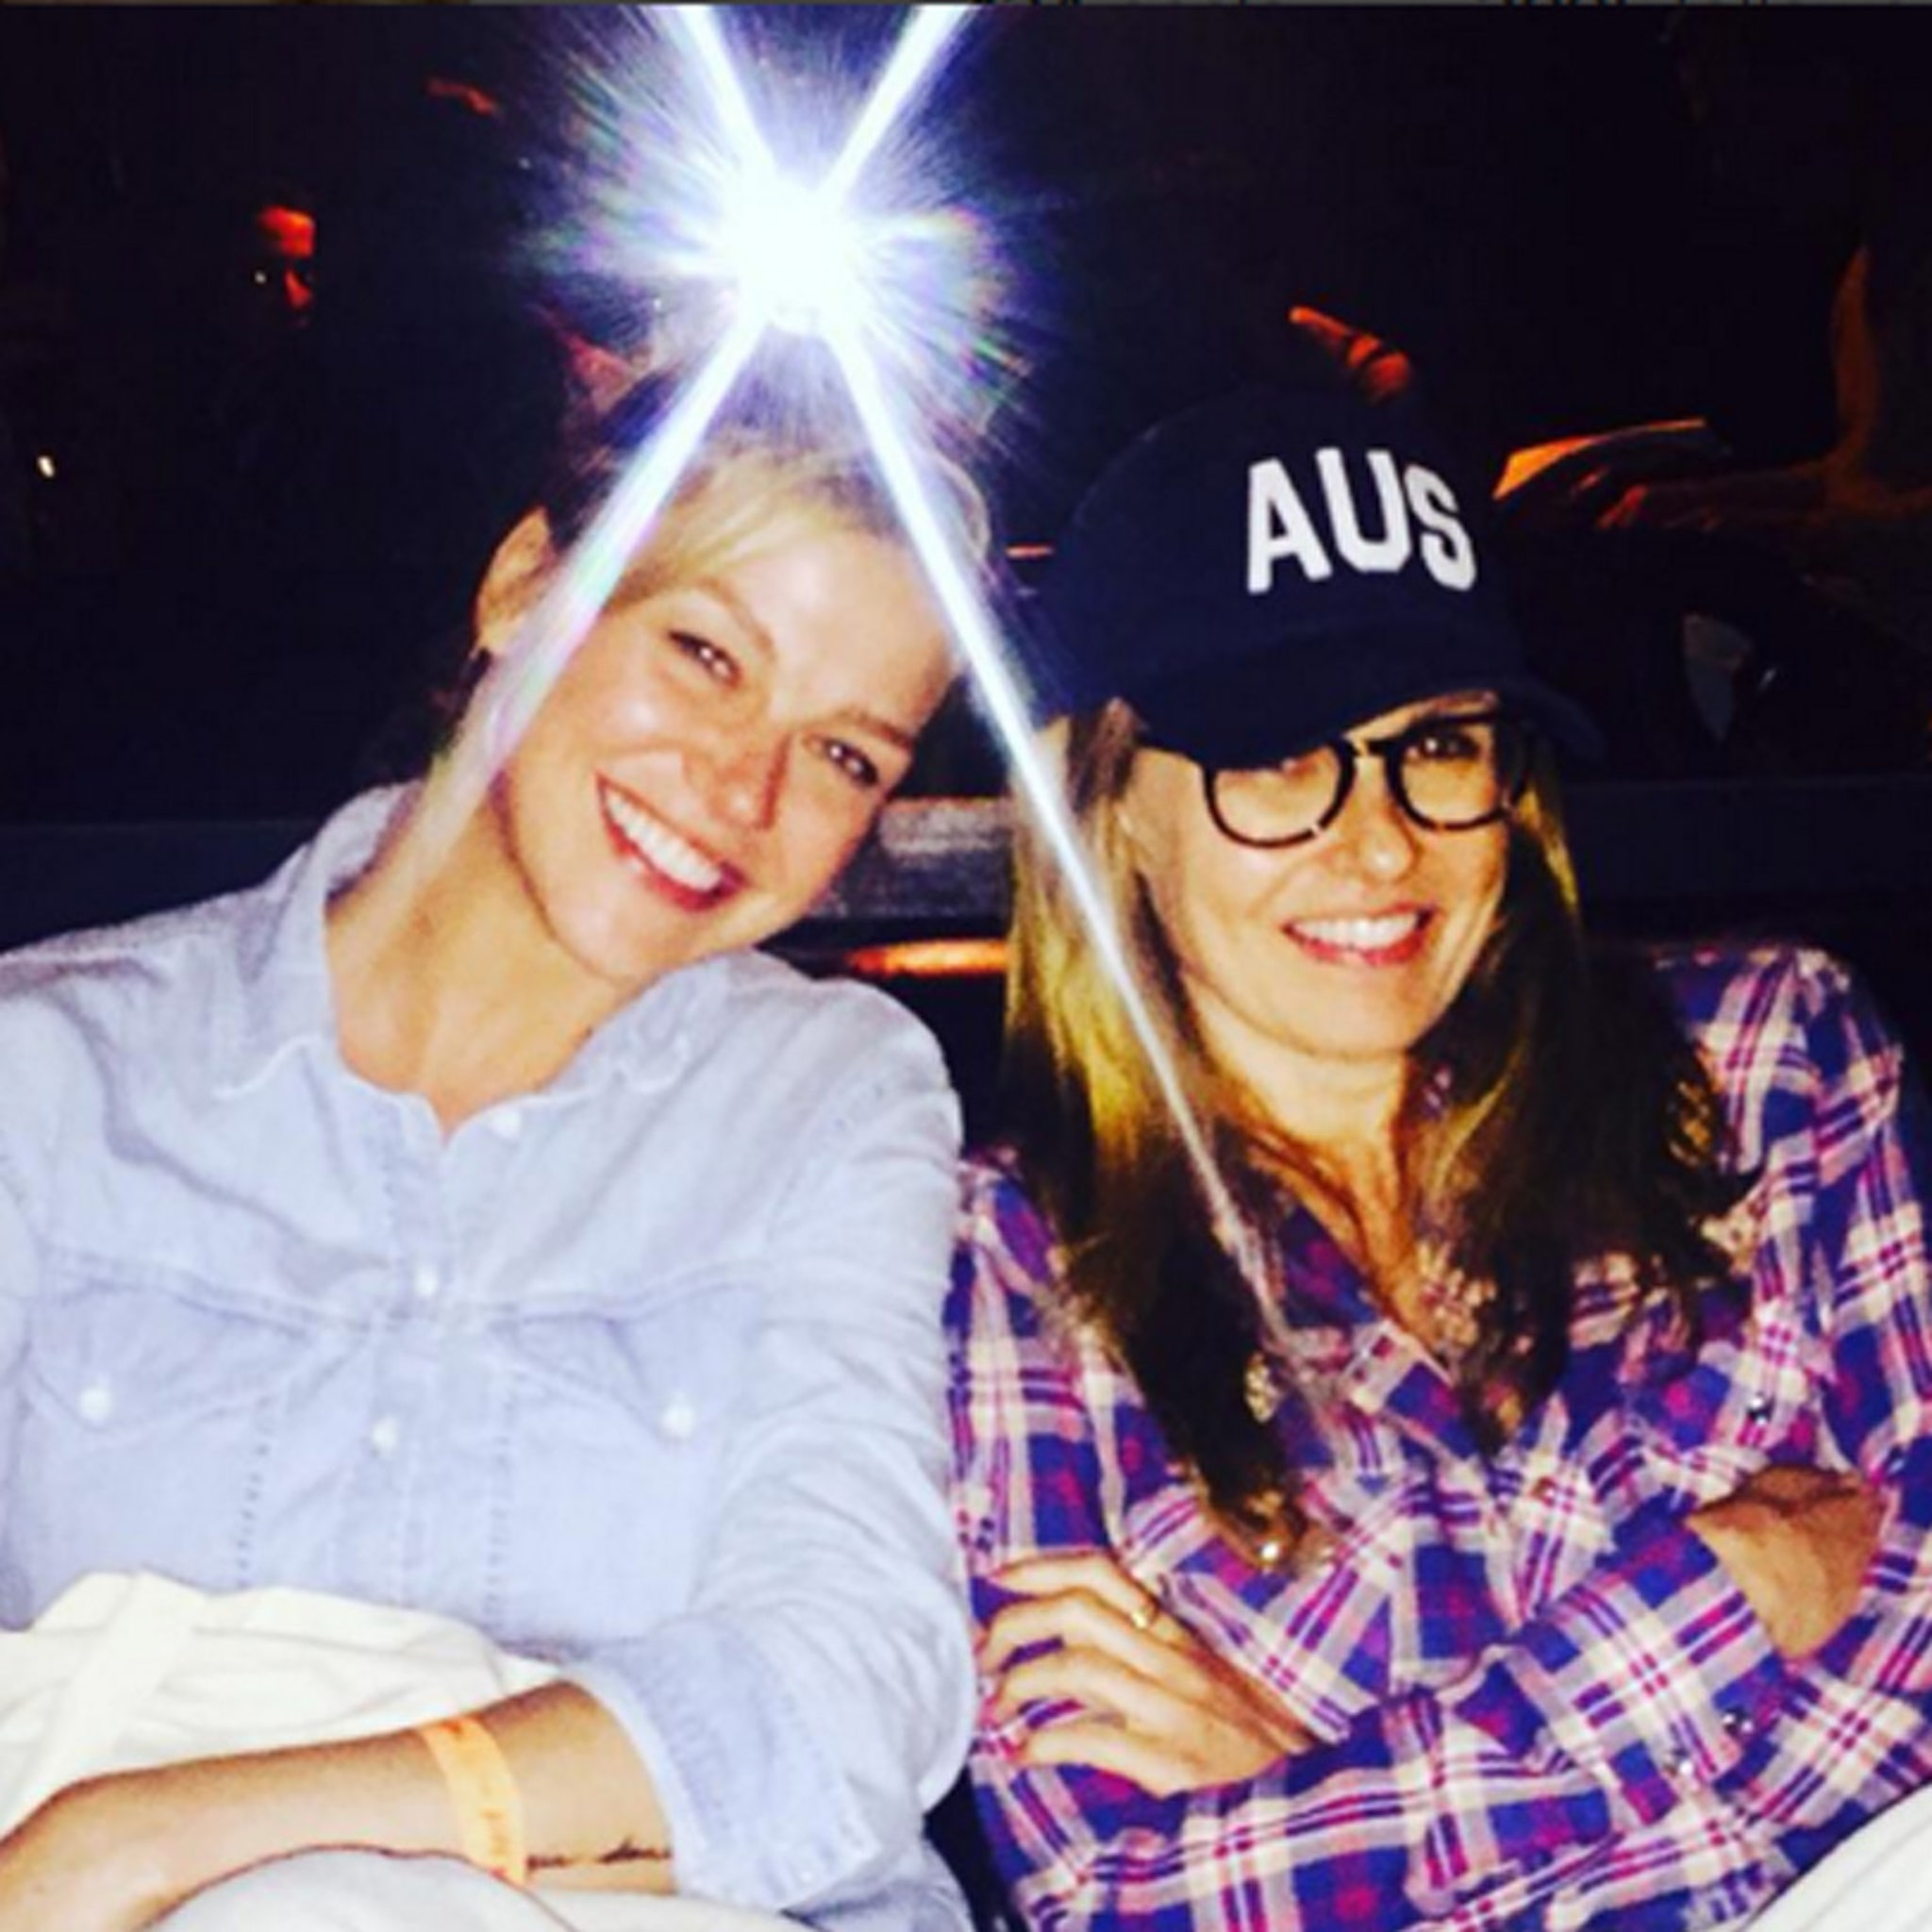 Texas Forever Connie Britton Has Mini Friday Night Lights Reunion With Adrianne Palicki